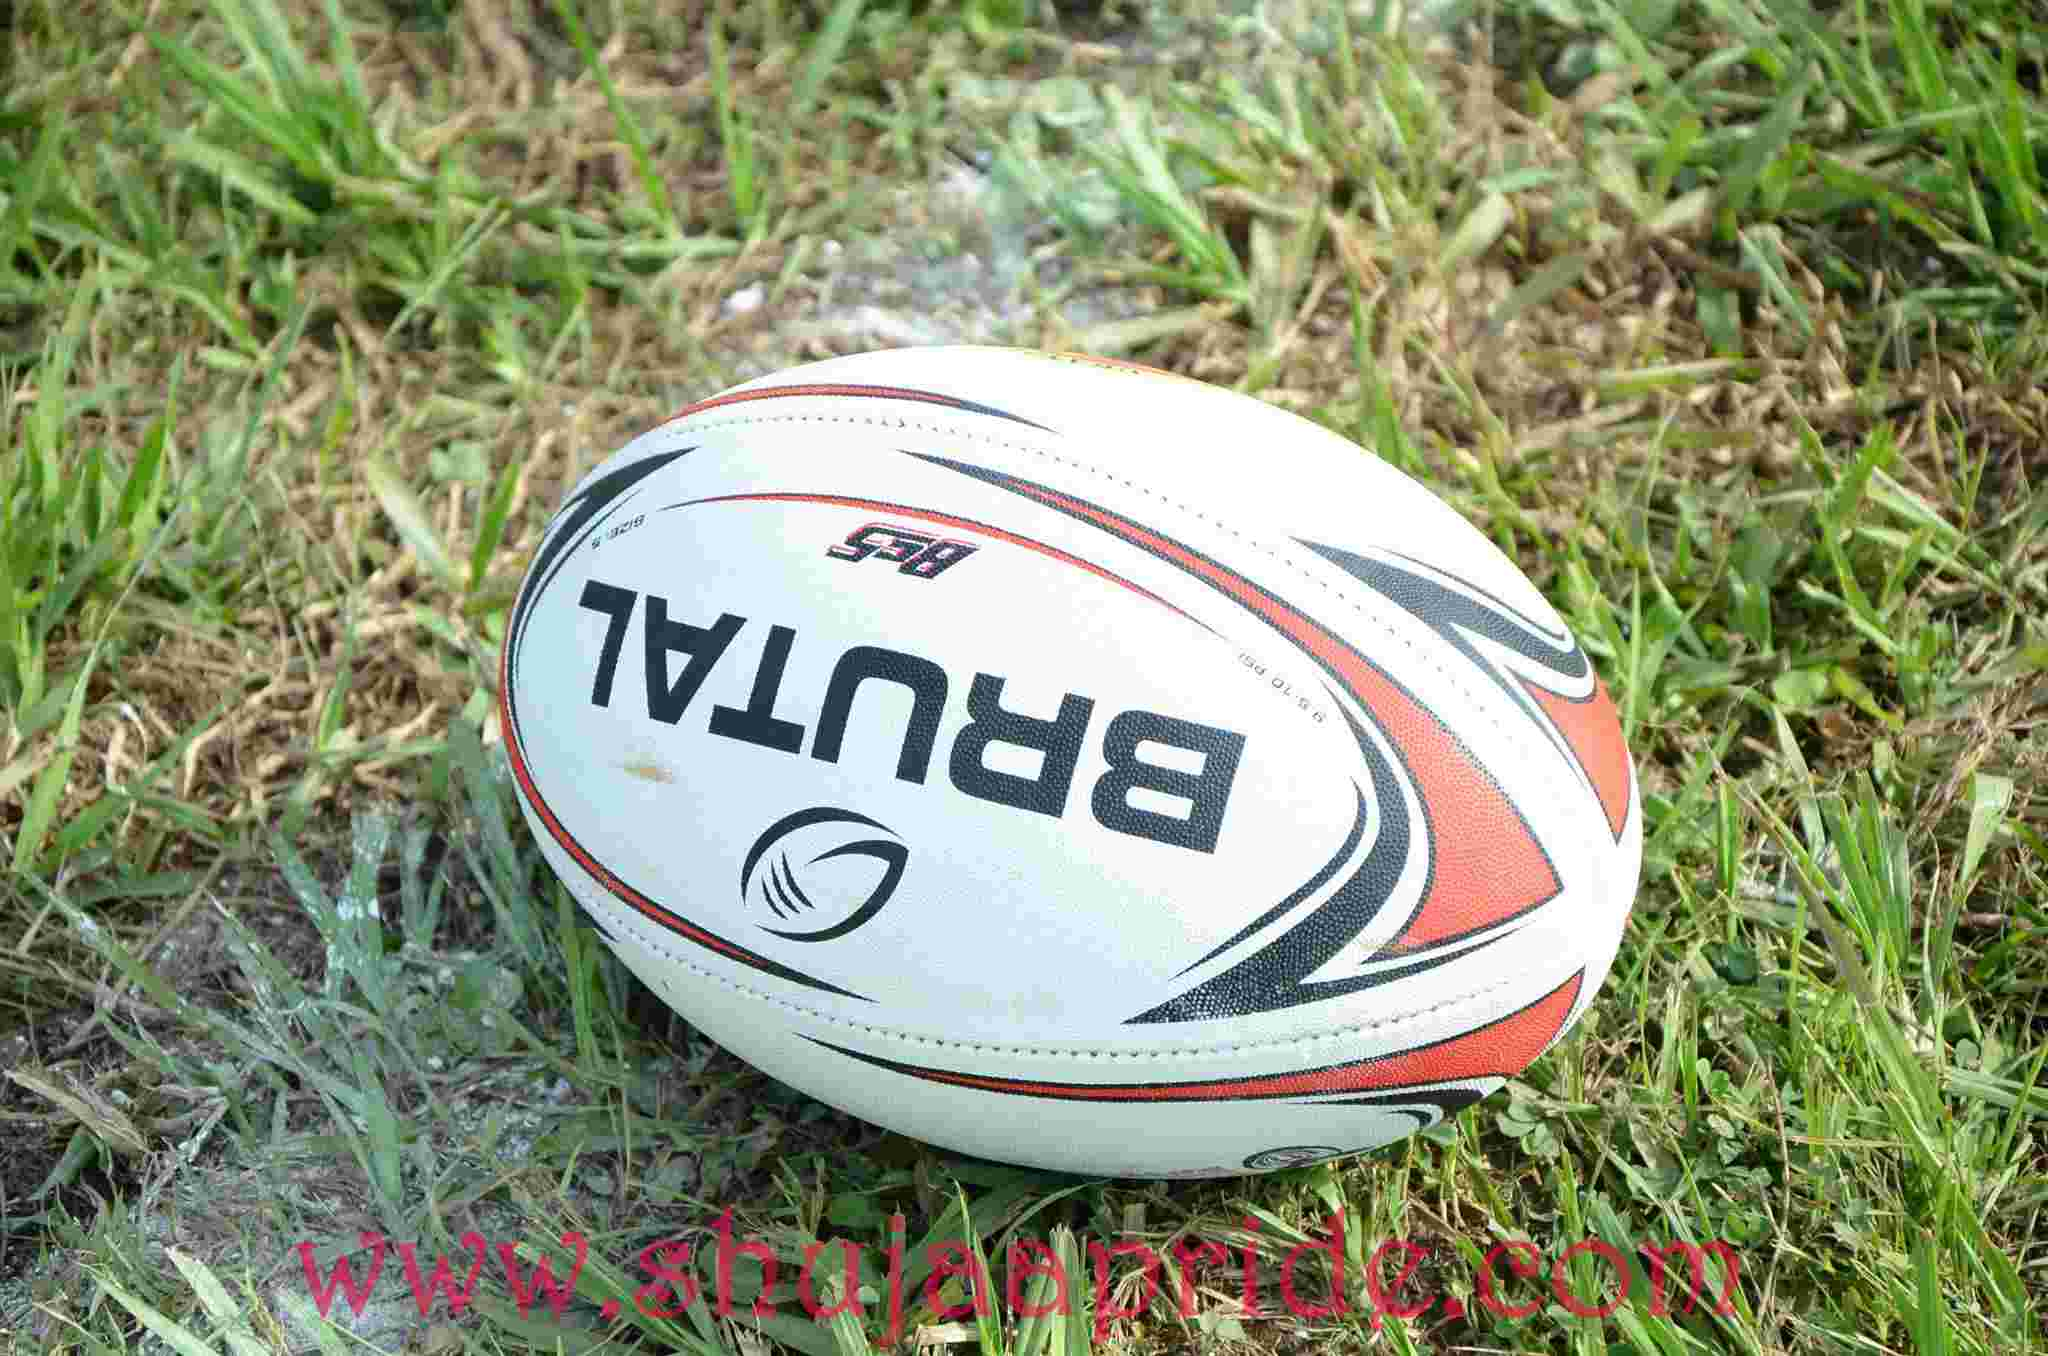 Rugby laws to be implemented in Southern and Northern Hemisphere